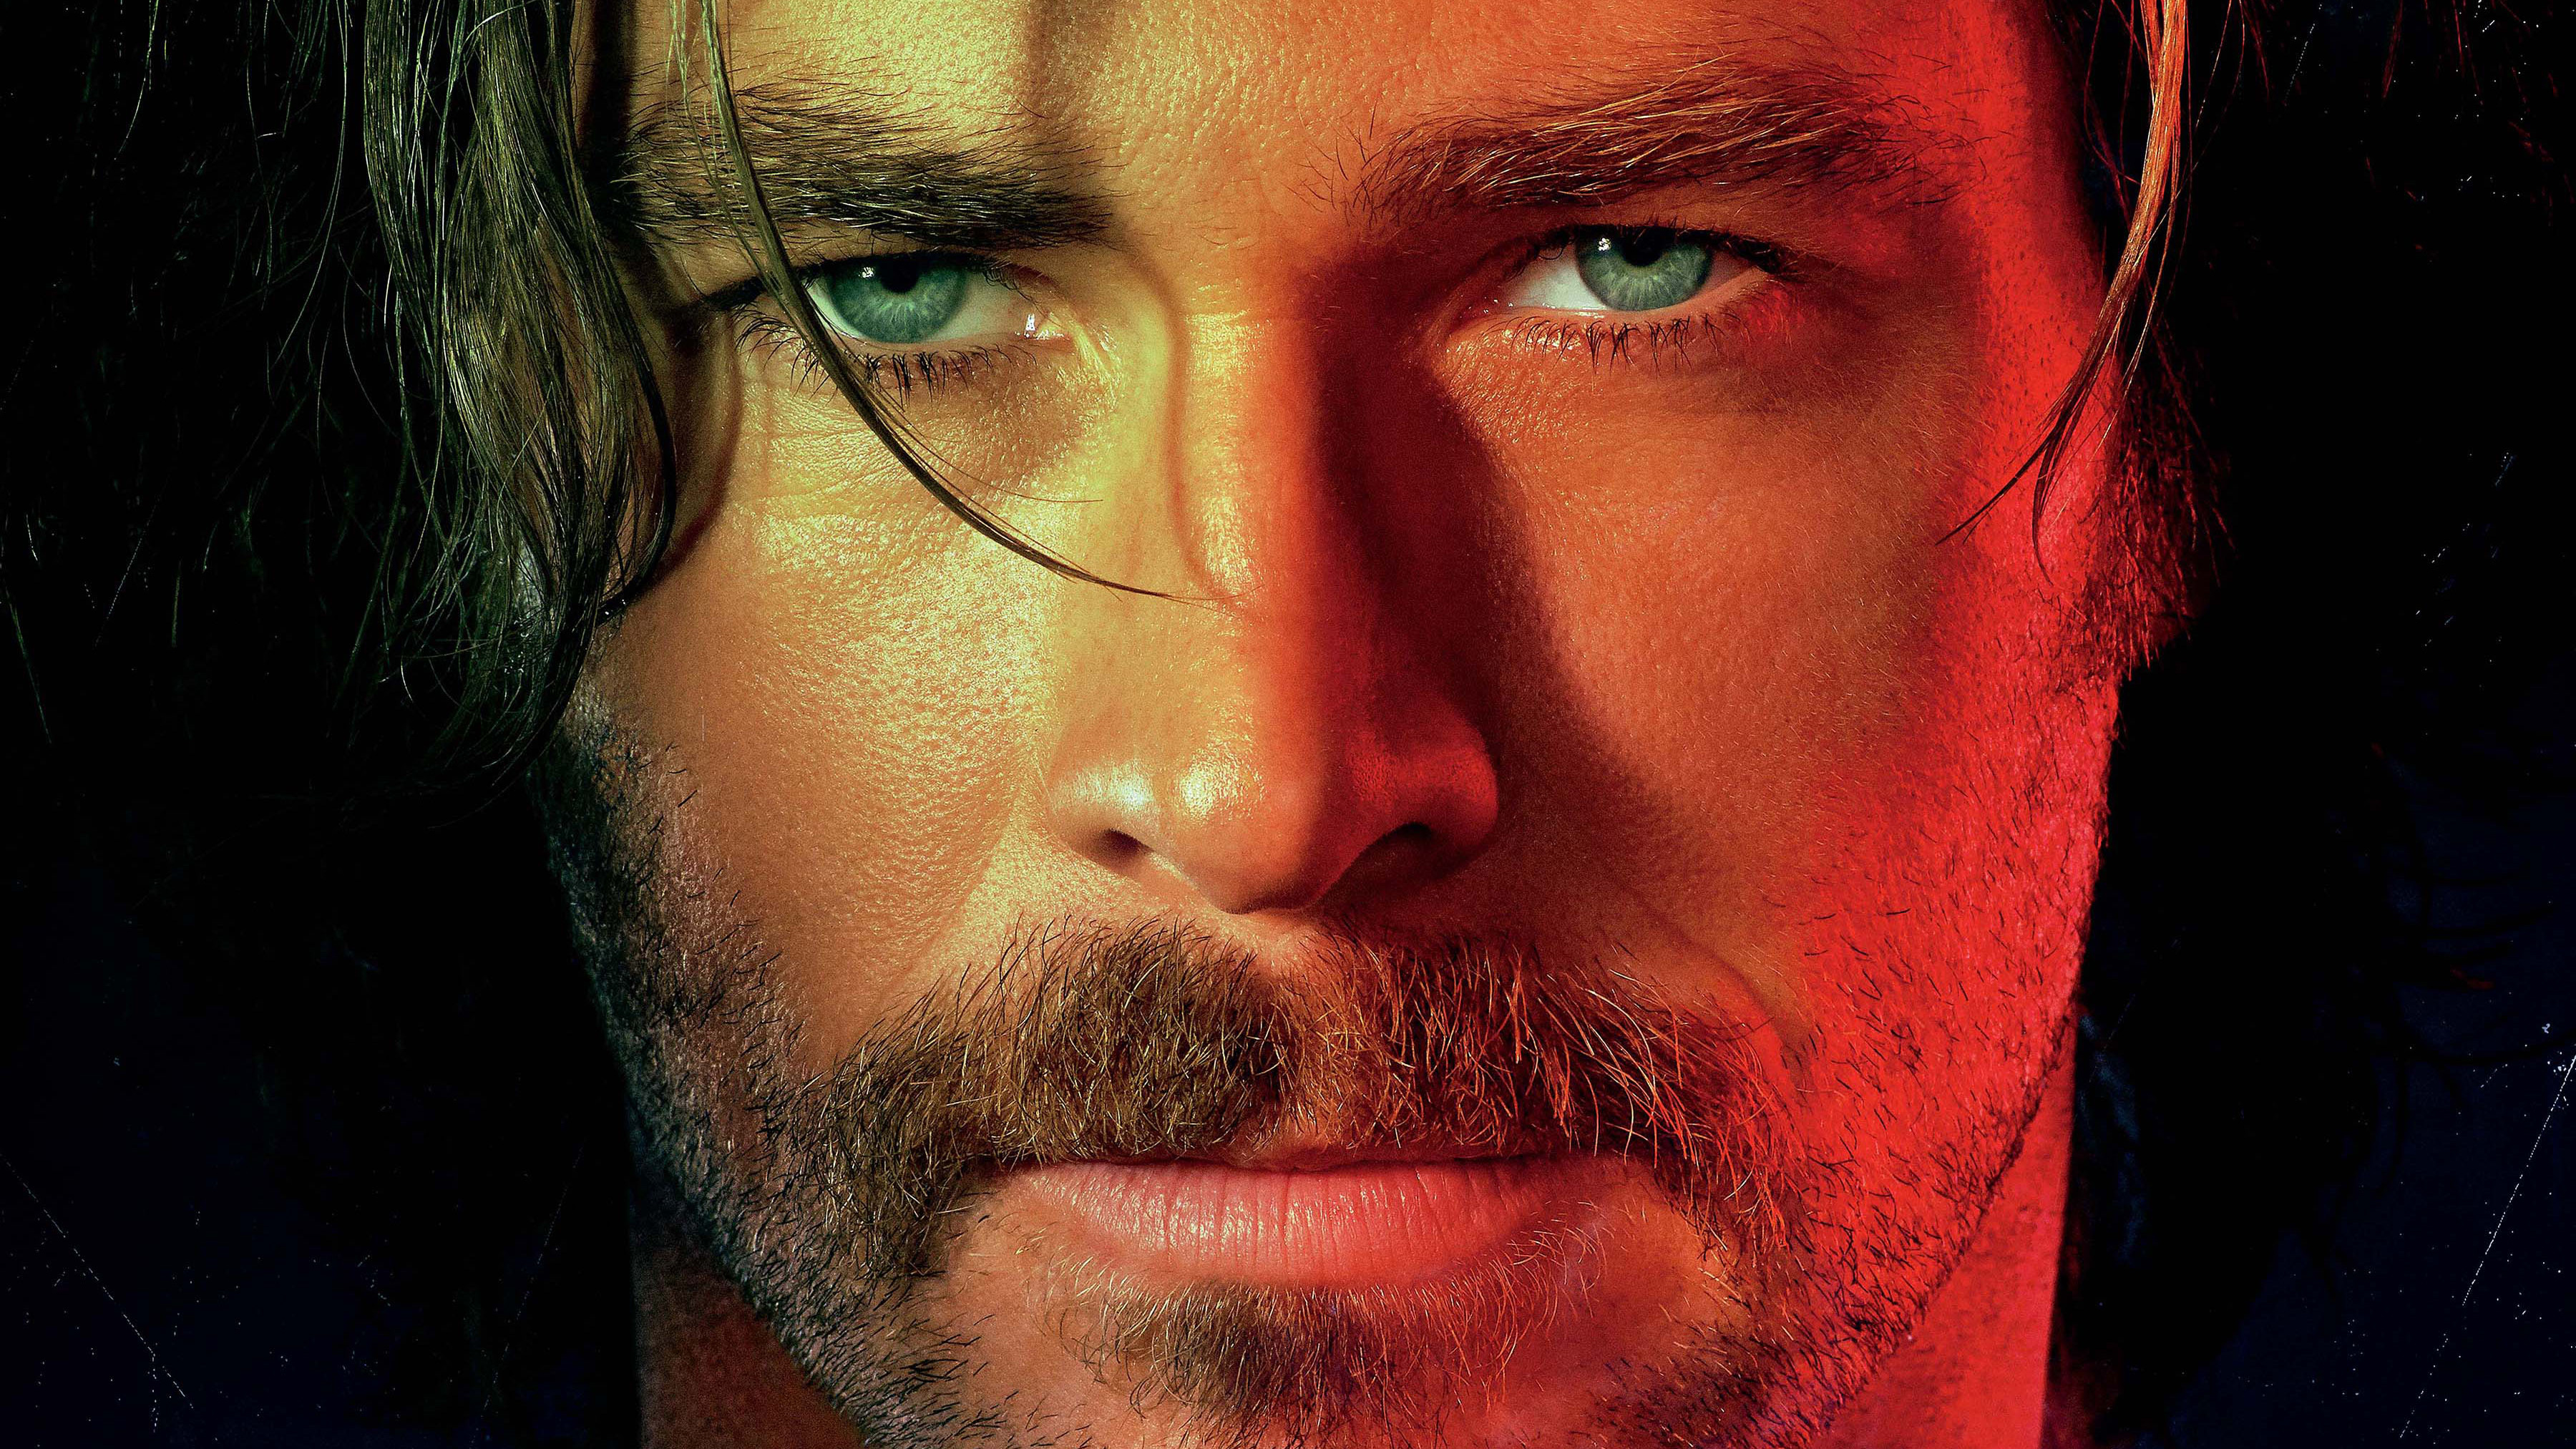 1152x864 Bad Times At The El Royale Movie 4k Chris Hemsworth